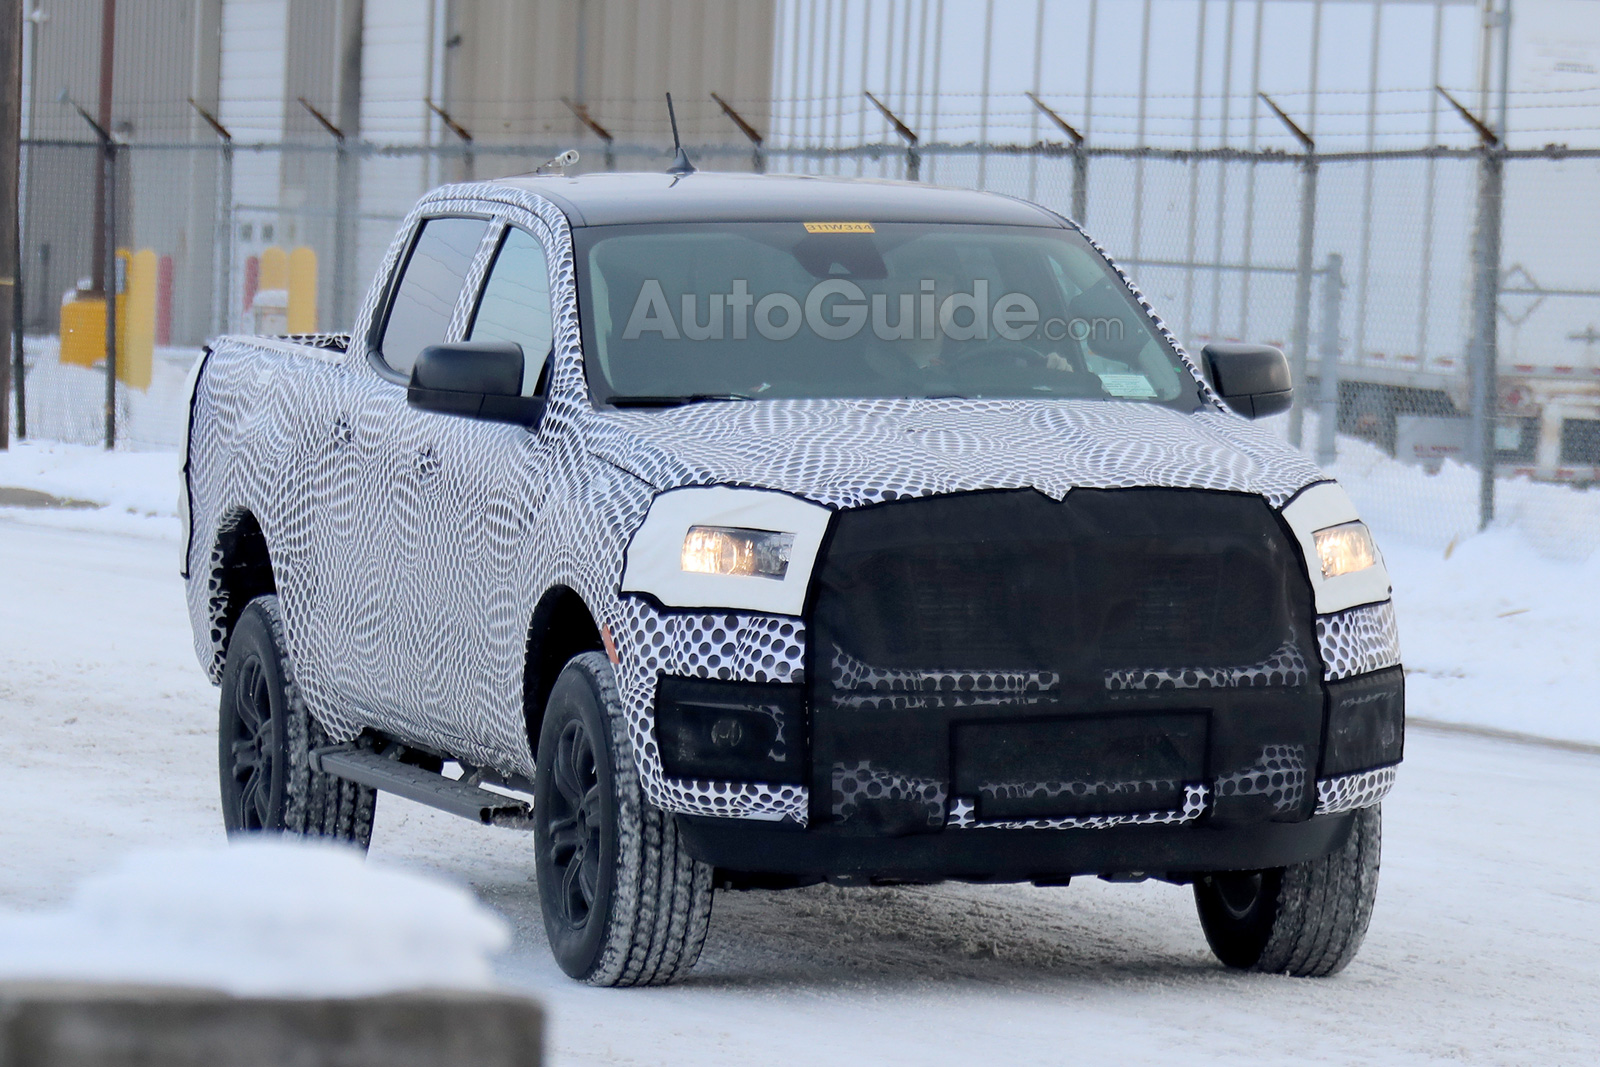 2019 Ford Ranger XLT Spied Undergoing Winter Testing ...